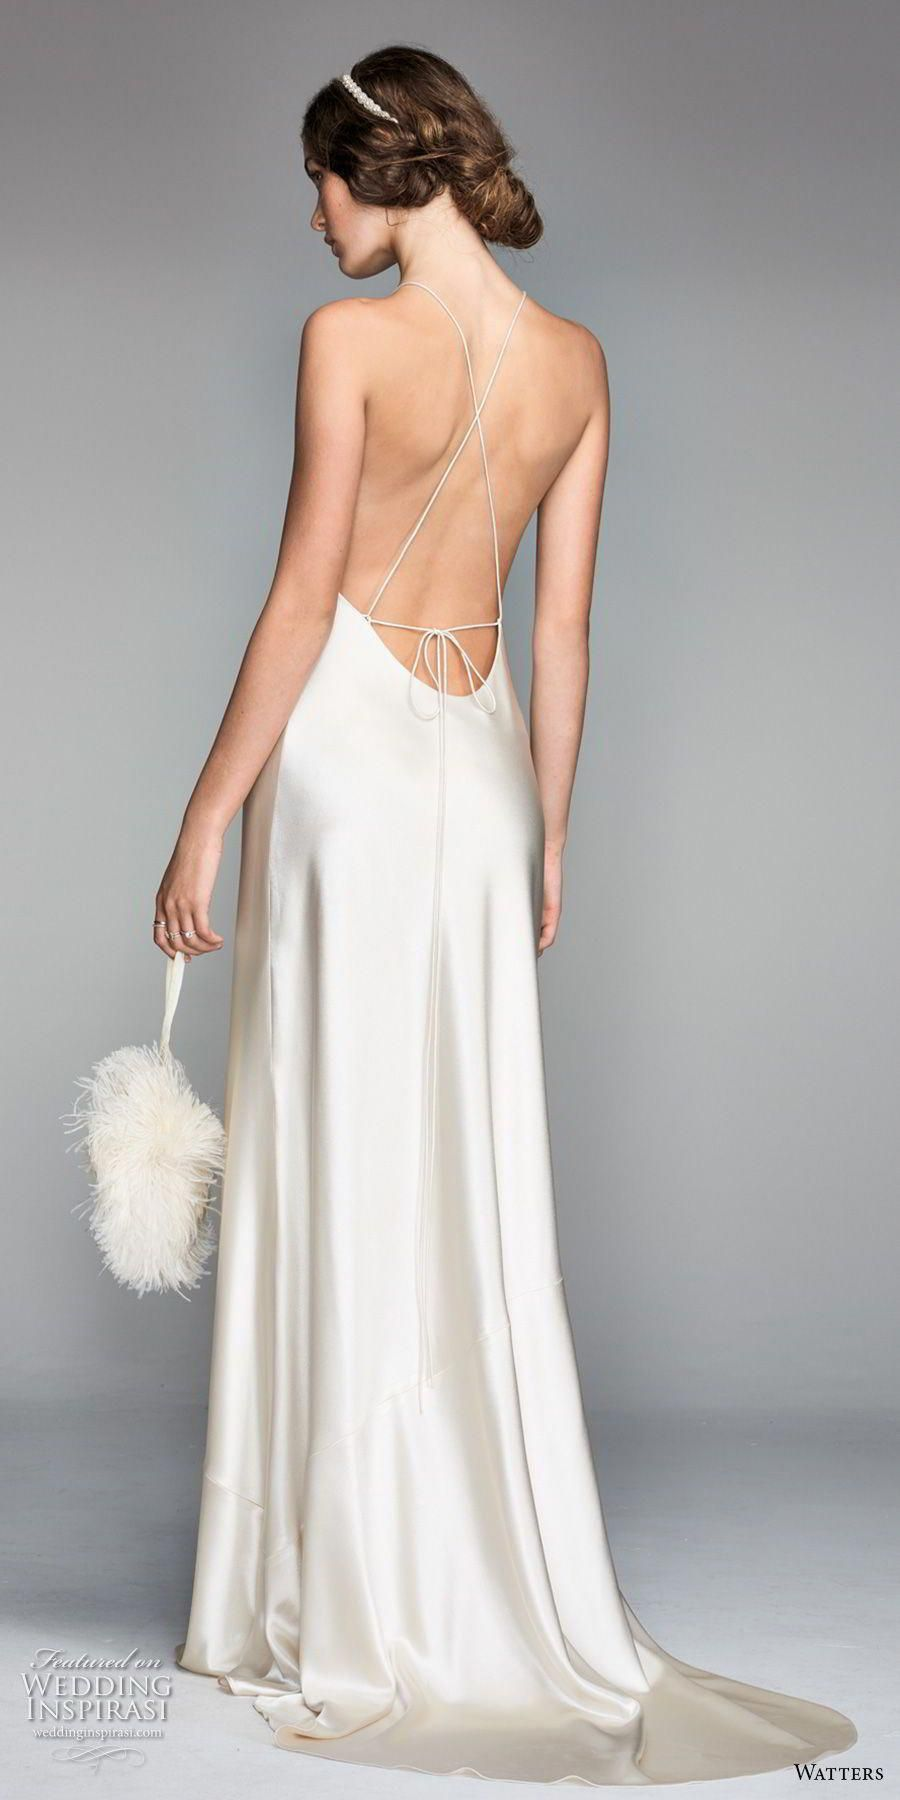 41+ What to wear under wedding dress with low back information